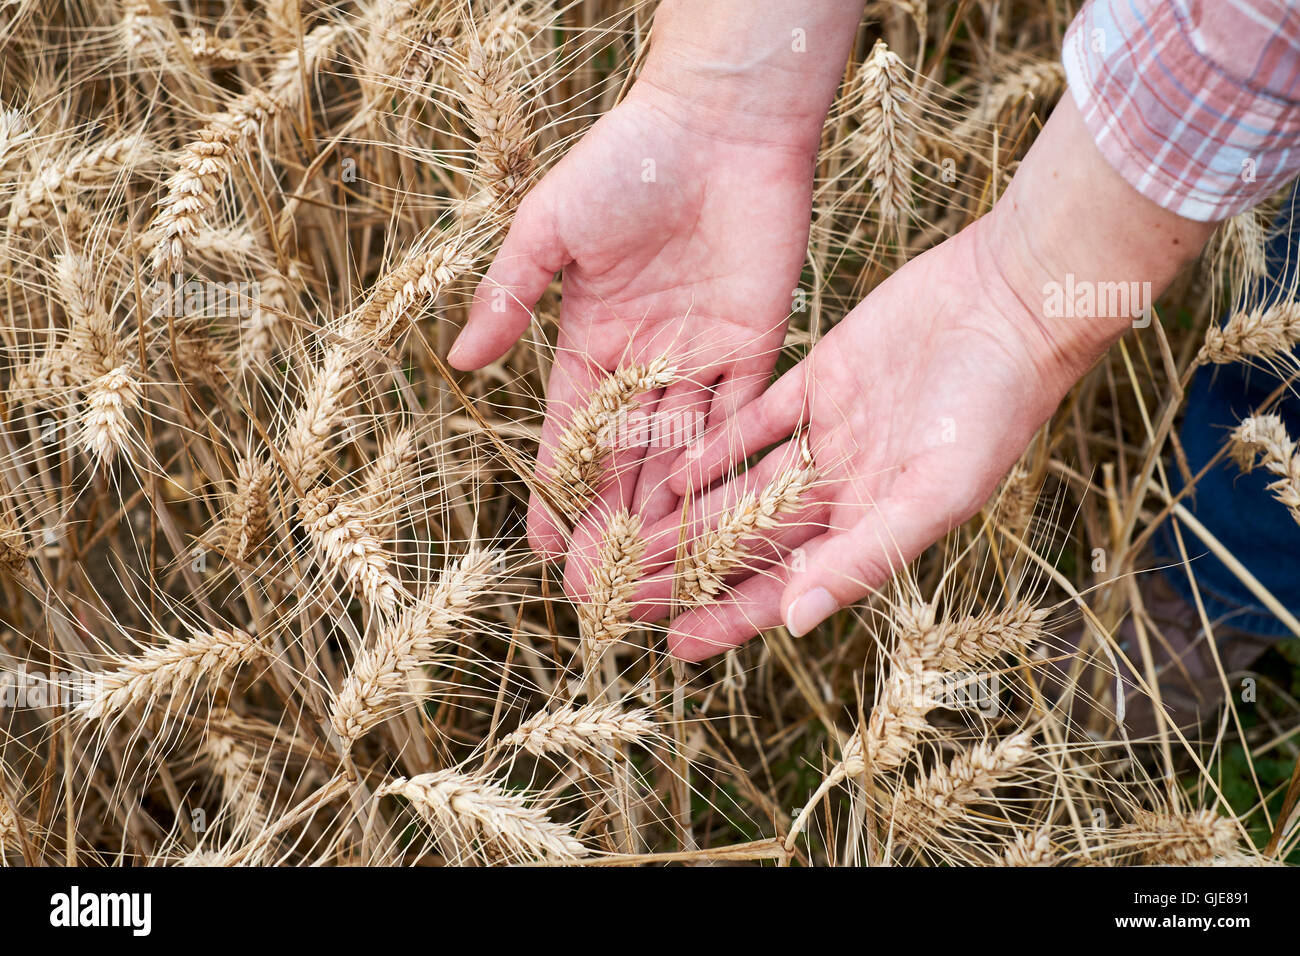 Female hands inspecting ripe ears of wheat prior to harvesting, UK. - Stock Image